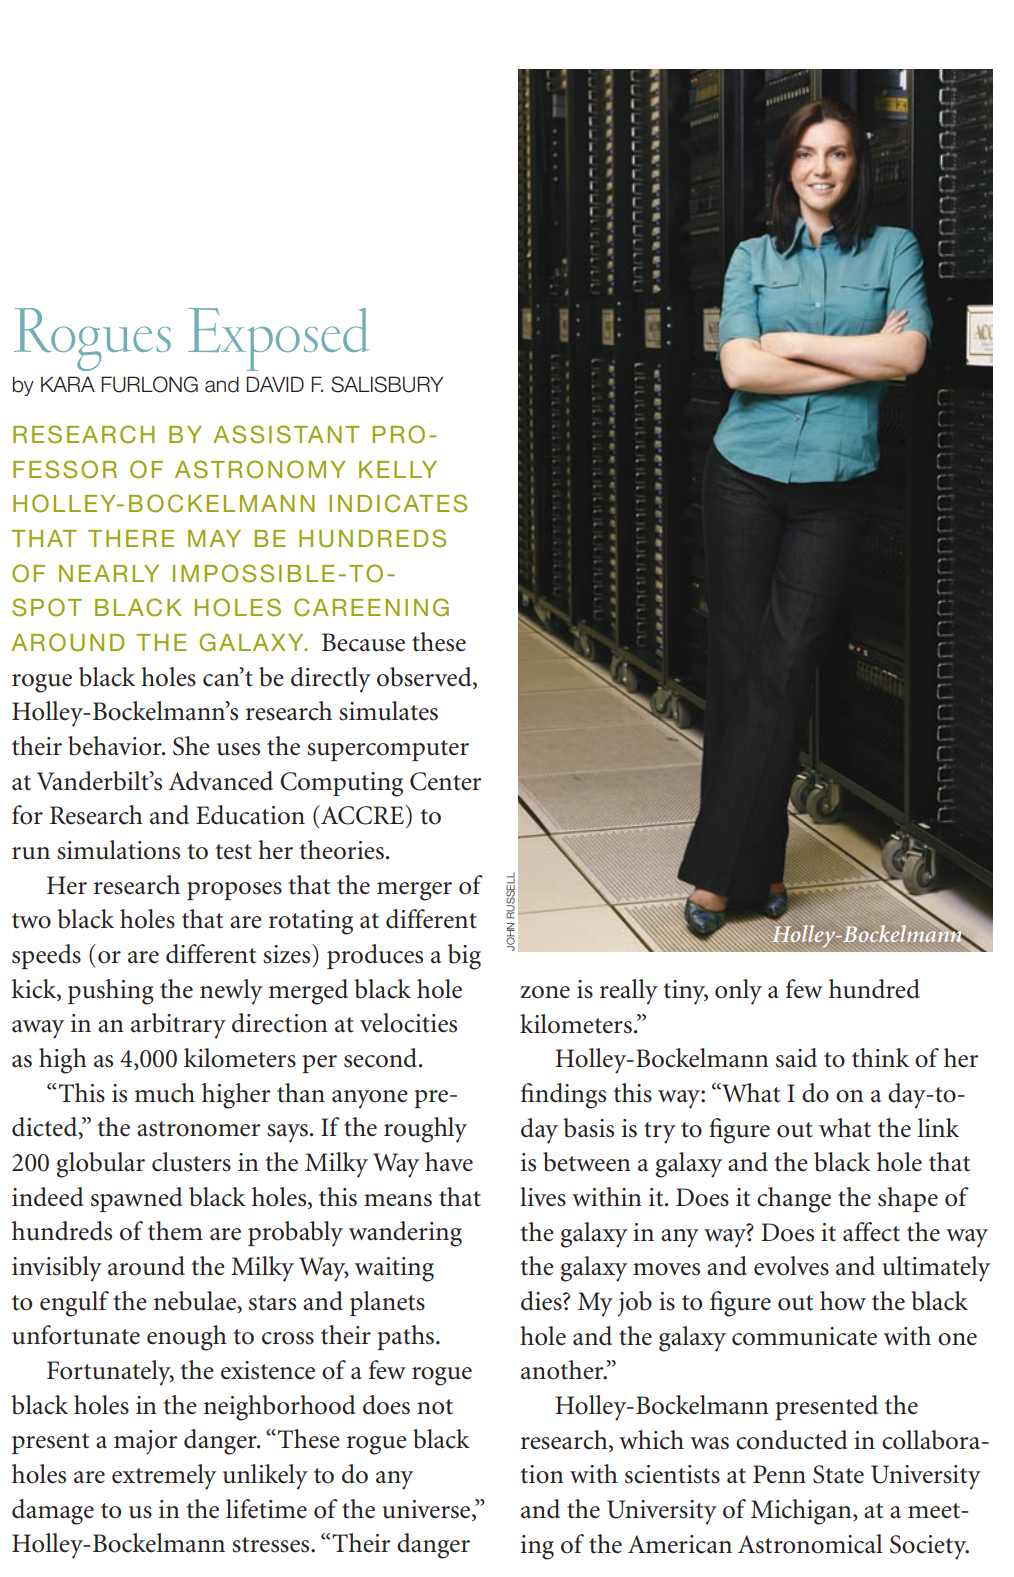 "Rogues Exposed by Kara Furlong and David F. Salisbury. Research by Assistant Professor of Astronomy Kelly Holley-Bockelmann indicates that there may be hundreds of nearly impossible-to-spot black holes careening around the galaxy. Because these rogue black holes can't be directly observed, Holley-Bockelmann's research simulates their behavior. She uses the supercomputer at Vanderbilt's Advanced Computing Center for Research and Education (ACCRE) to run simulations to test her theories. Her research proposes that the merger of two black holes that are rotating at different speeds (or are different sizes) produces a big kick, pushing the newly merged black hole away in an arbitrary direction at velocities as high as 4,000 kilometers per second. ""This is much higher than anyone predicted,"" the astronomer says. If the roughly 200 globular clusters in the Milky Way have indeed spawned black holes, this means that hundreds of them are probably wandering invisibly around the Milky Way, waiting to engulf the nebulae, stars and planets unfortunate enough to cross their paths. Fortunately, the existence of a few rogue black holes in the neighborhood does not present a major danger. ""These rogue black holes are extremely unlikely to do any damage to us in the lifetime of the universe,"" Holley-Bockelmann stresses. ""Their danger zone is really tiny, only a few hundred kilometers."" Holley-Bockelmann said to think of her findings this way: ""What I do on a day-today basis is try to figure out what the link is between a galaxy and the black hole that lives within it. Does it change the shape of the galaxy in any way? Does it affect the way the galaxy moves and evolves and ultimately dies? My job is to figure out how the black hole and the galaxy communicate with one another."" Holley-Bockelmann presented the research, which was conducted in collaboration with scientists at Penn State University and the University of Michigan, at a meeting of the American Astronomical Society."